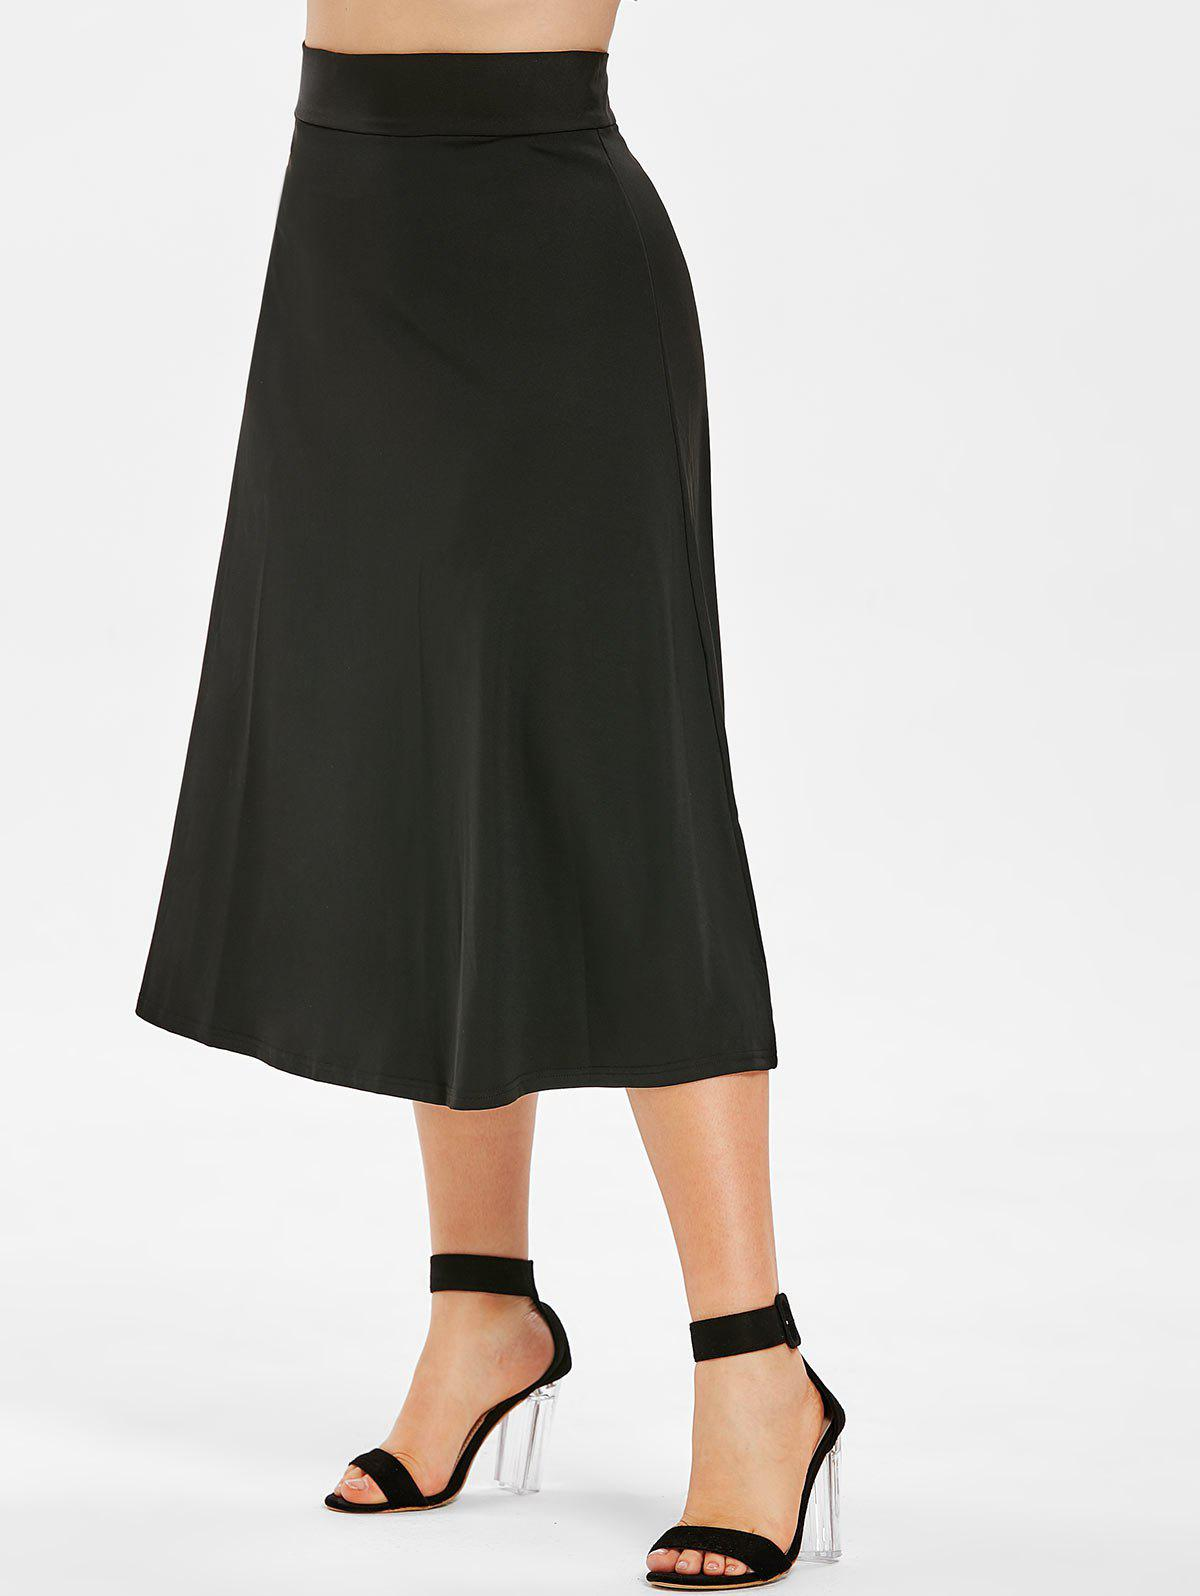 Sale Zip Up Plus Size High Waist Skirt